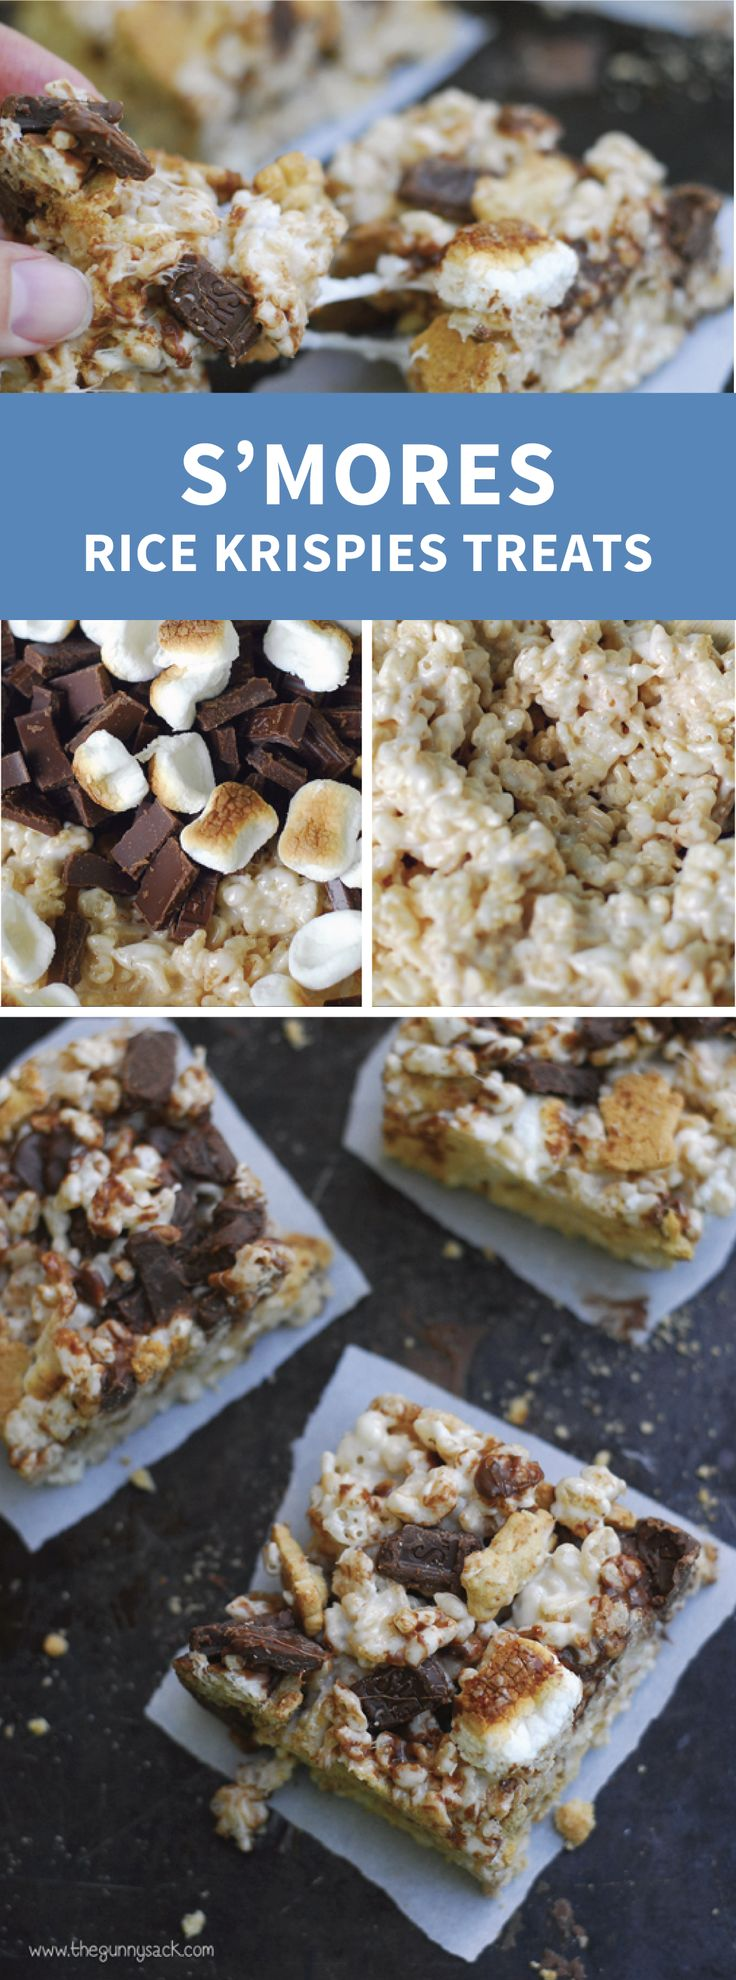 Check out these S'mores Rice Krispies Treats® for an ooey, gooey dessert recipe that the whole family can enjoy. Add mini marshmallows, graham crackers, and whole chocolate chunks to Rice Krispies® cereal to give this easy no-bake treat it's irresistible taste.